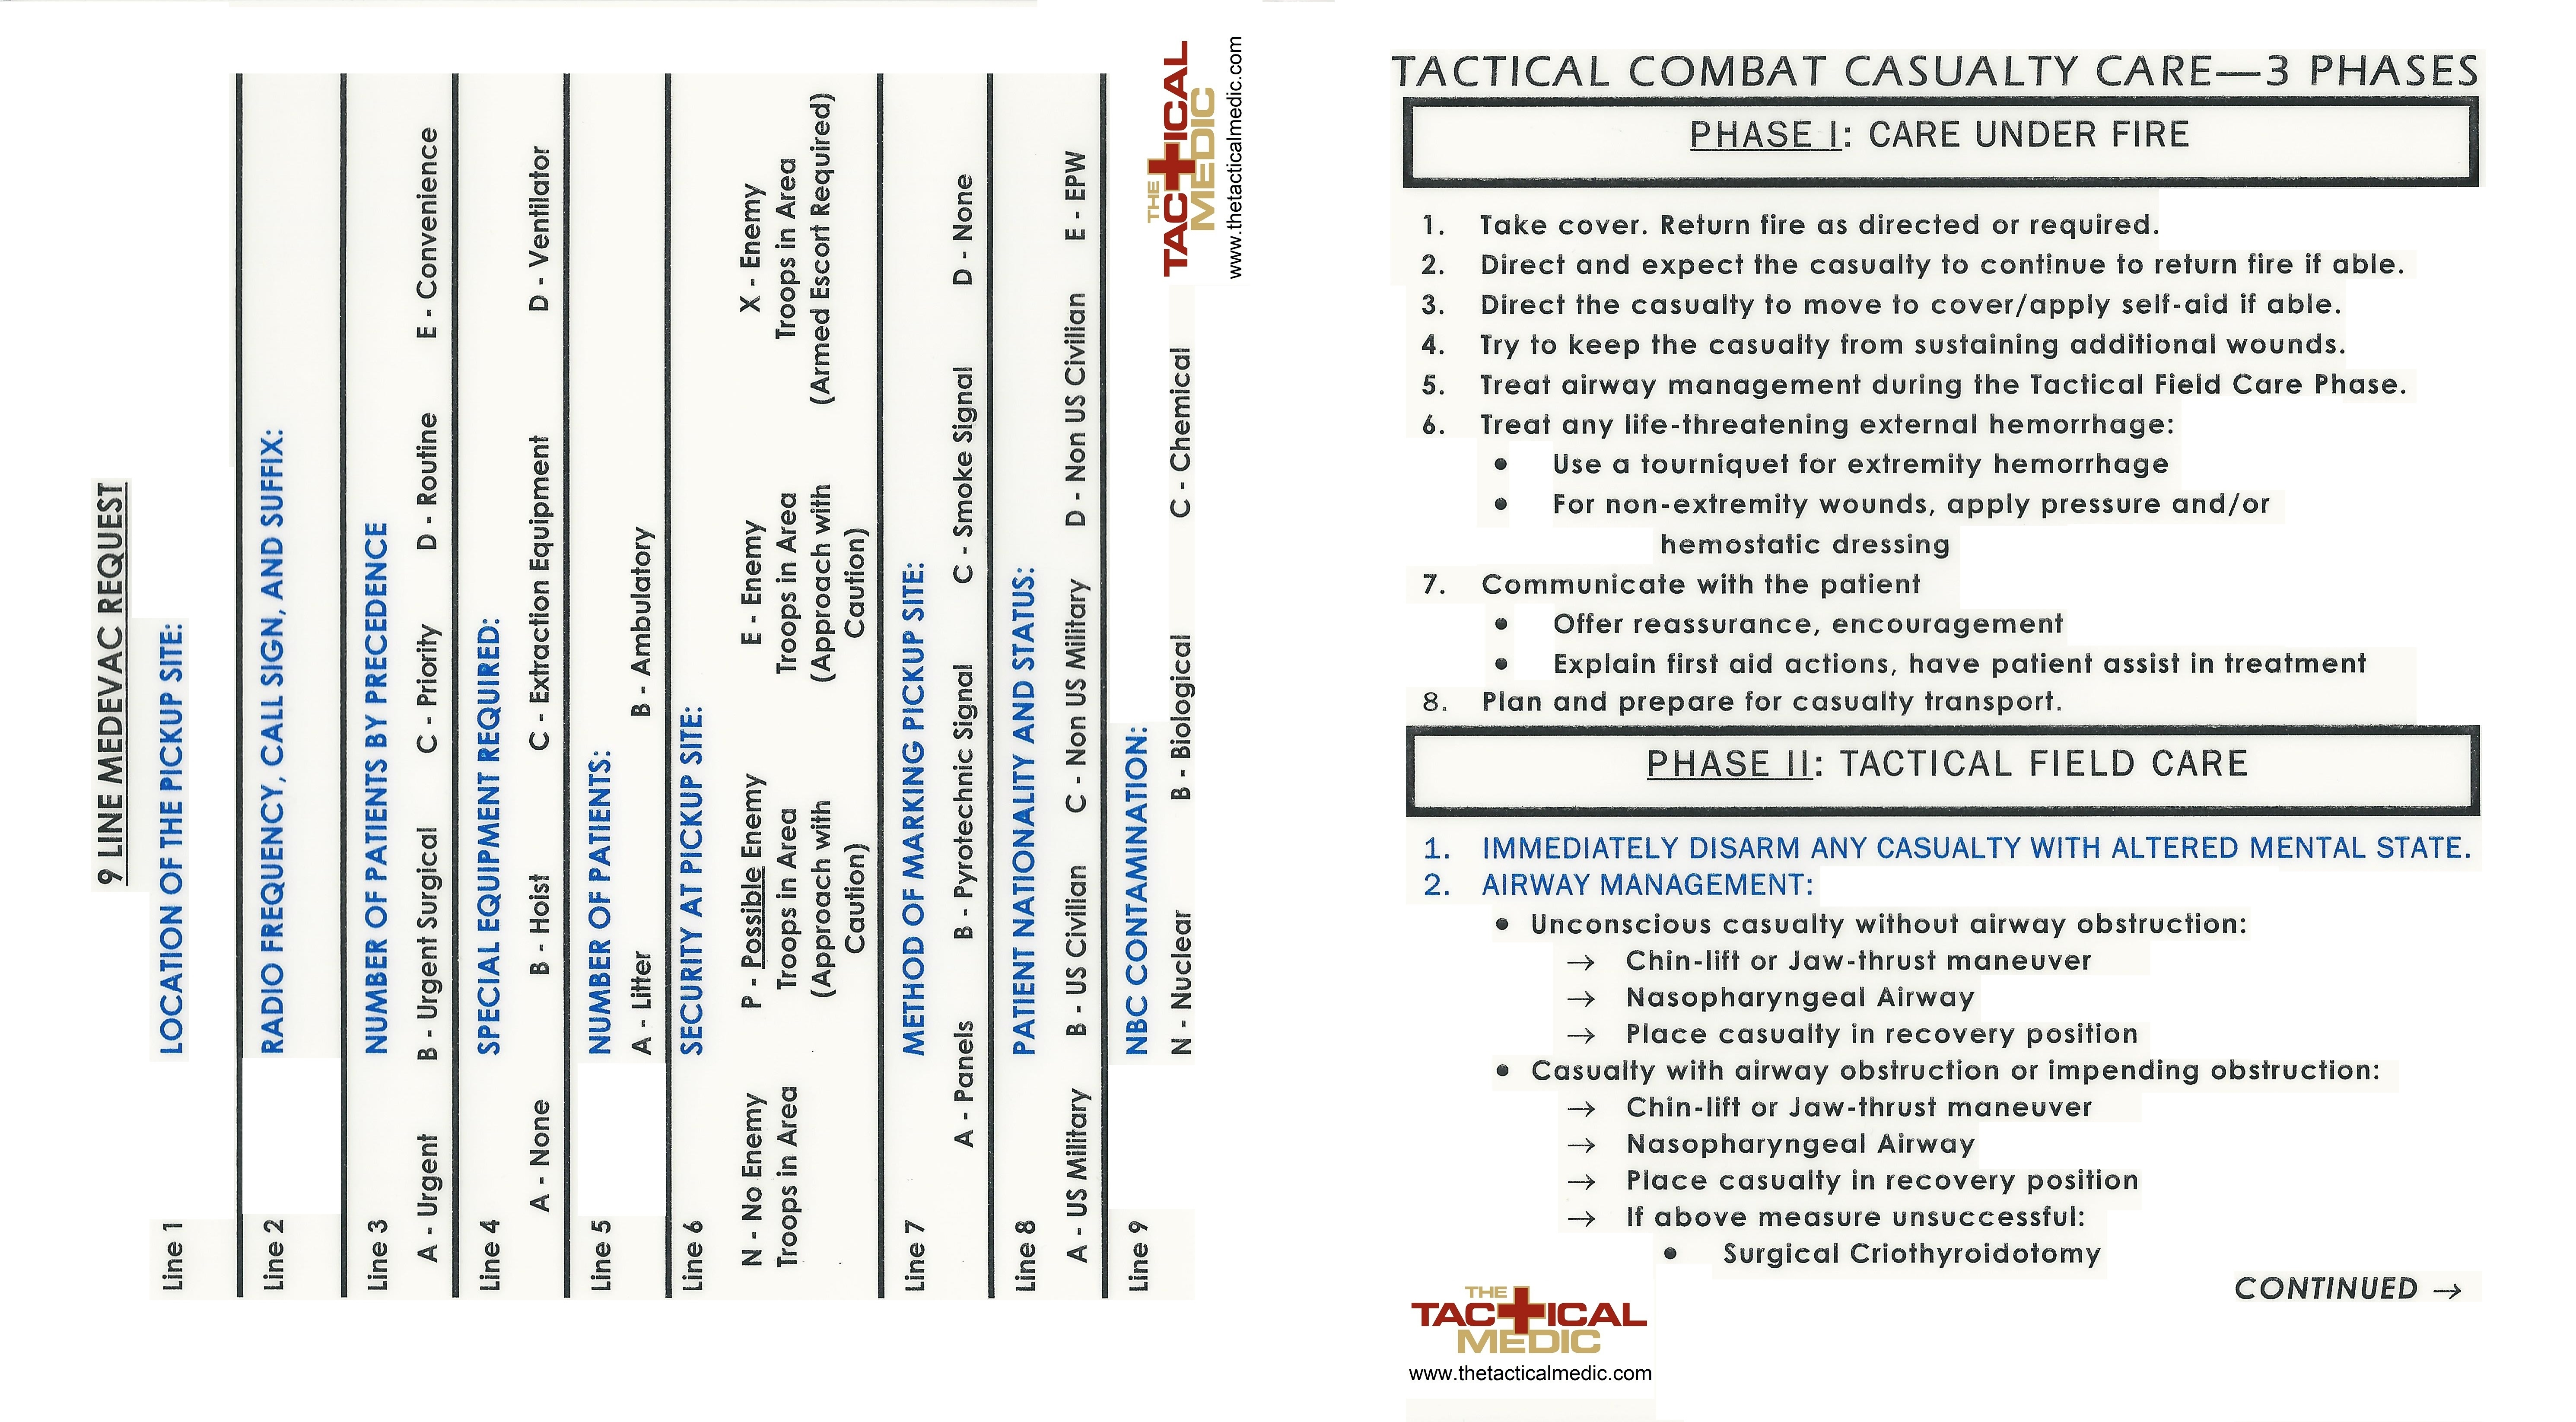 Casualty Care Card Tccc